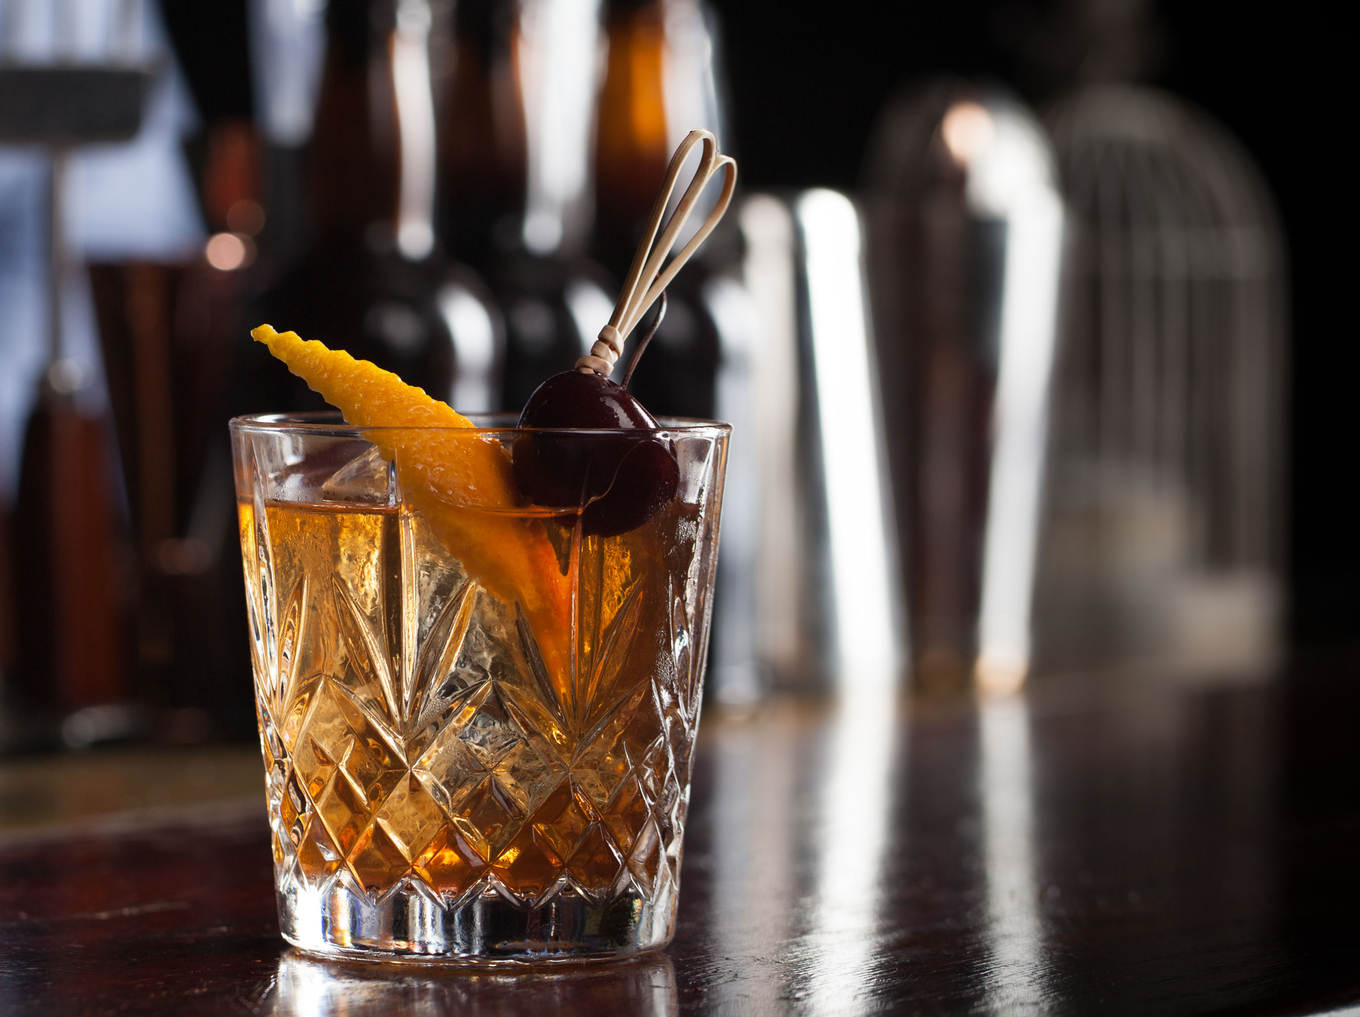 Old Fashioned cocktail image 1